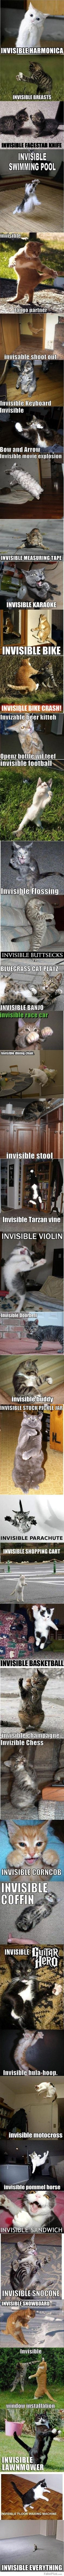 Lolcats Invisible Olympics